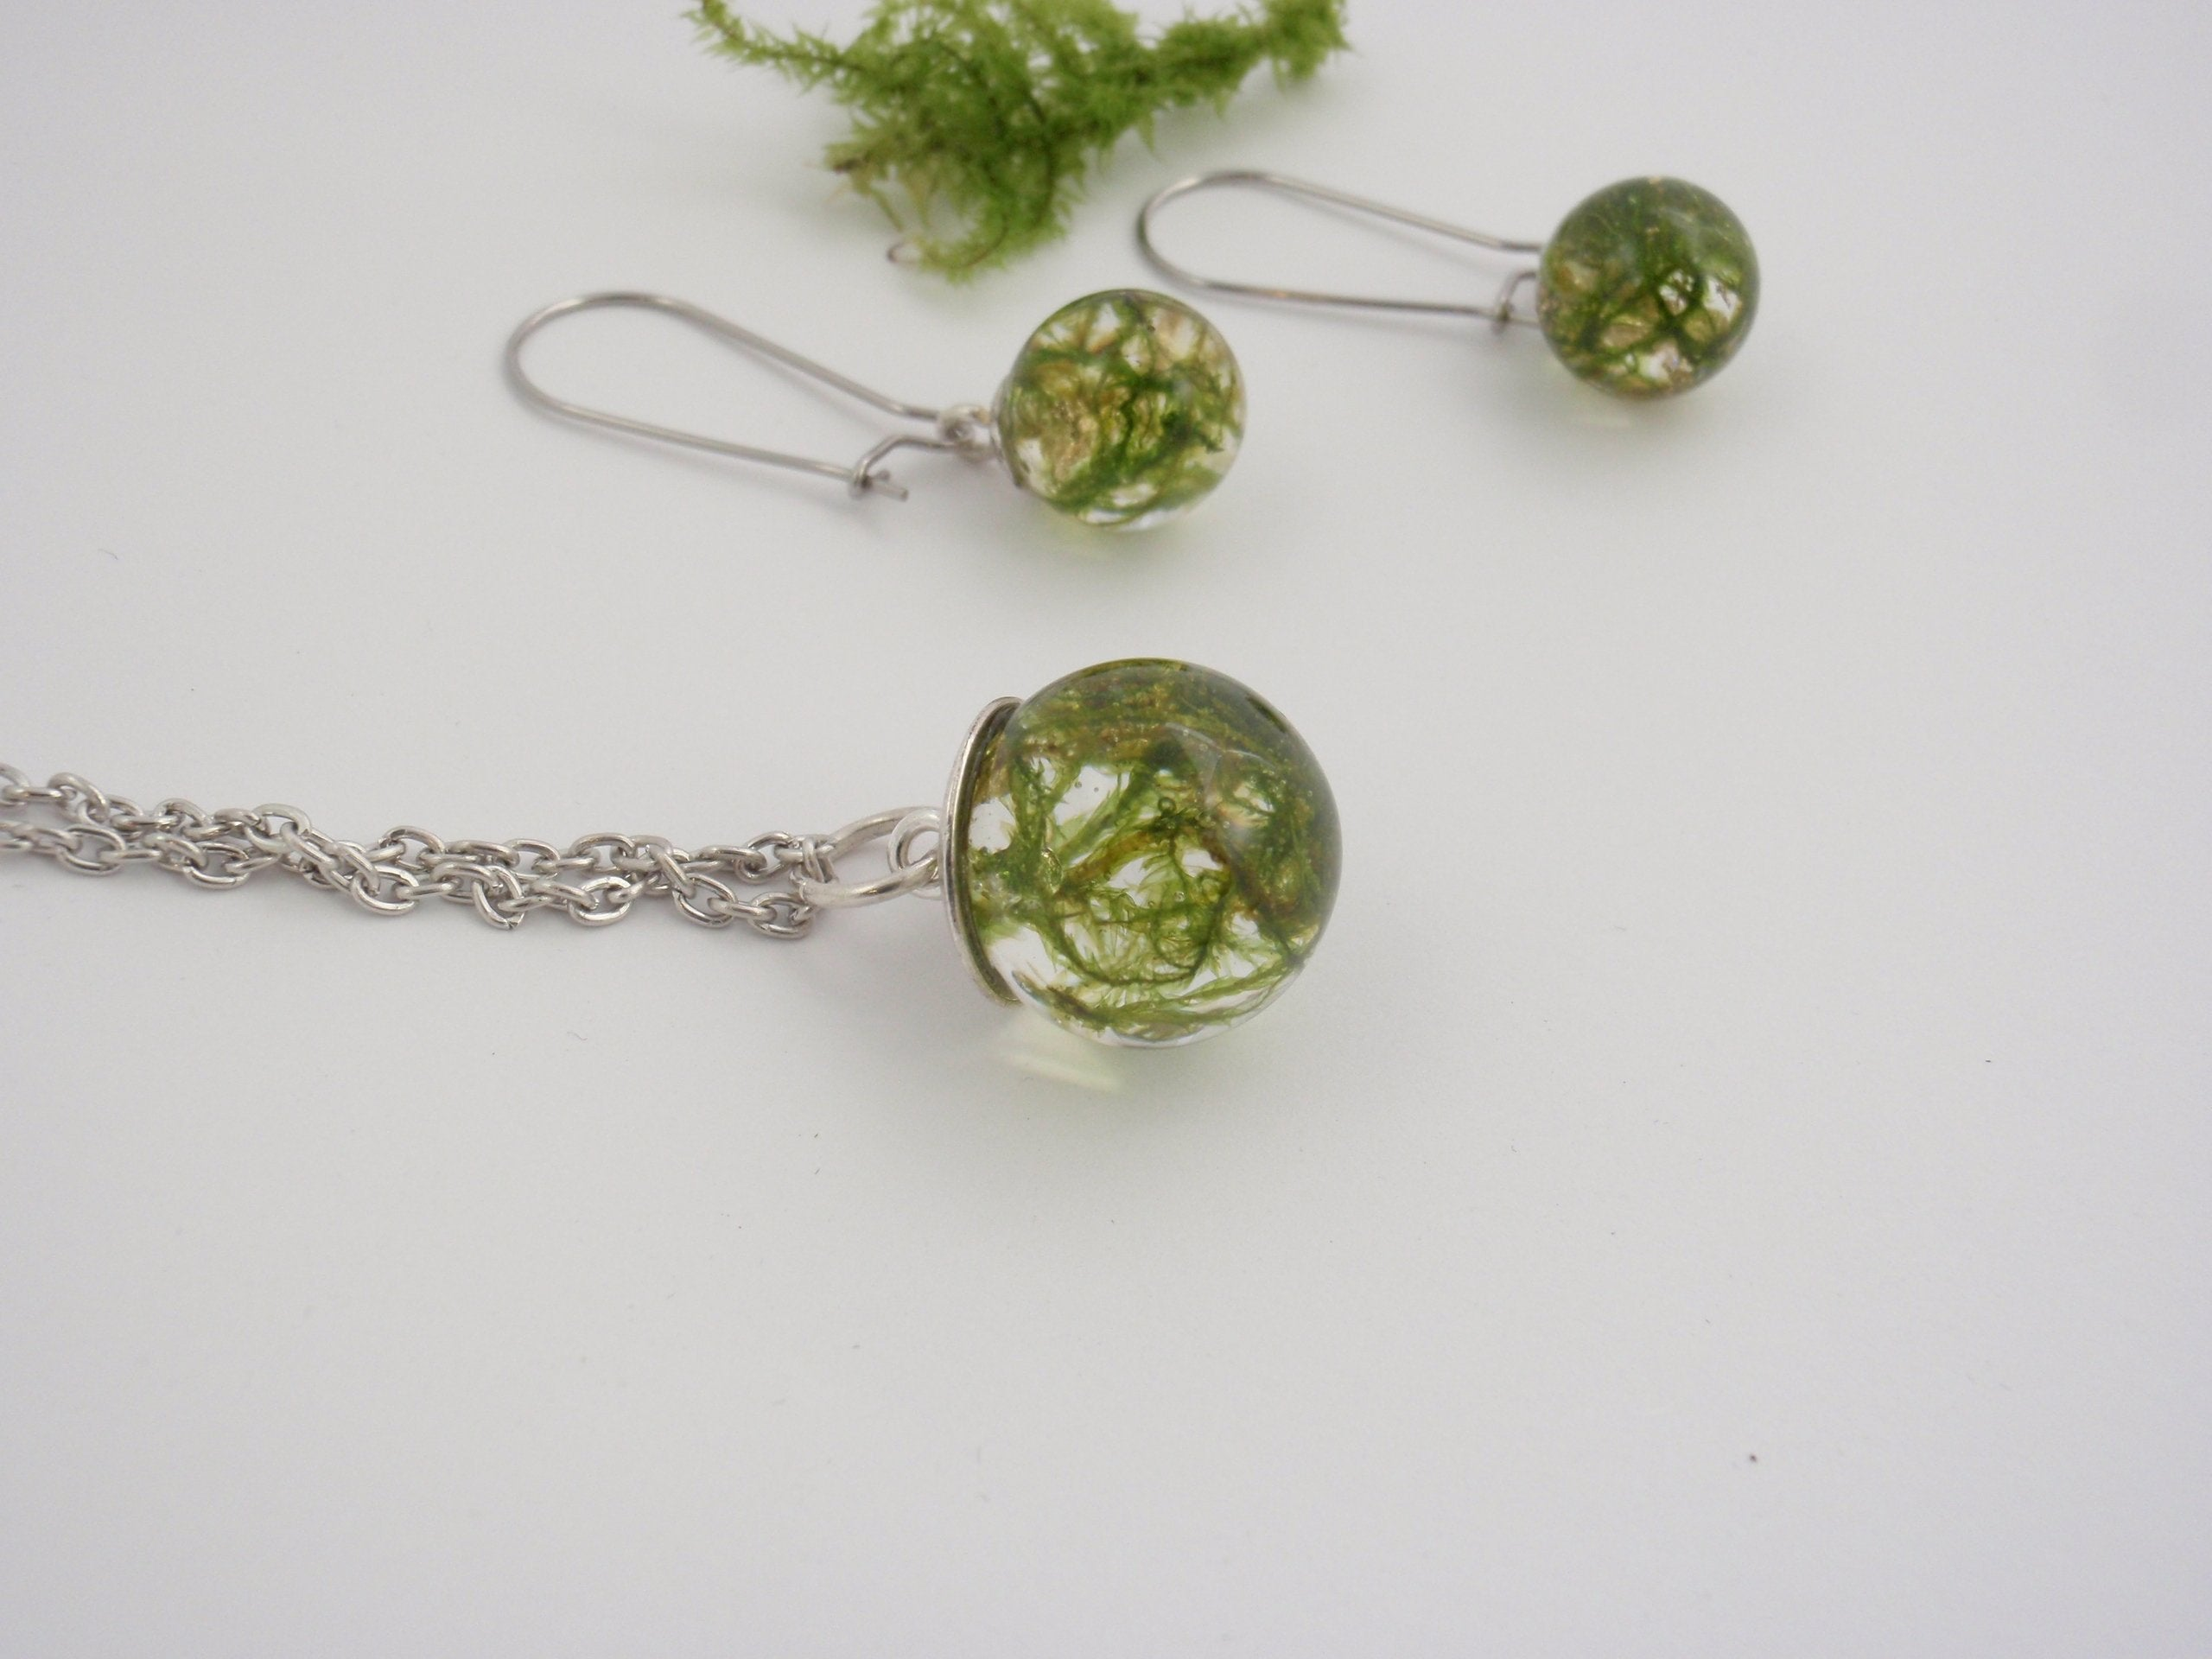 Real moss necklace and earrings set - moss from Slovenian forests